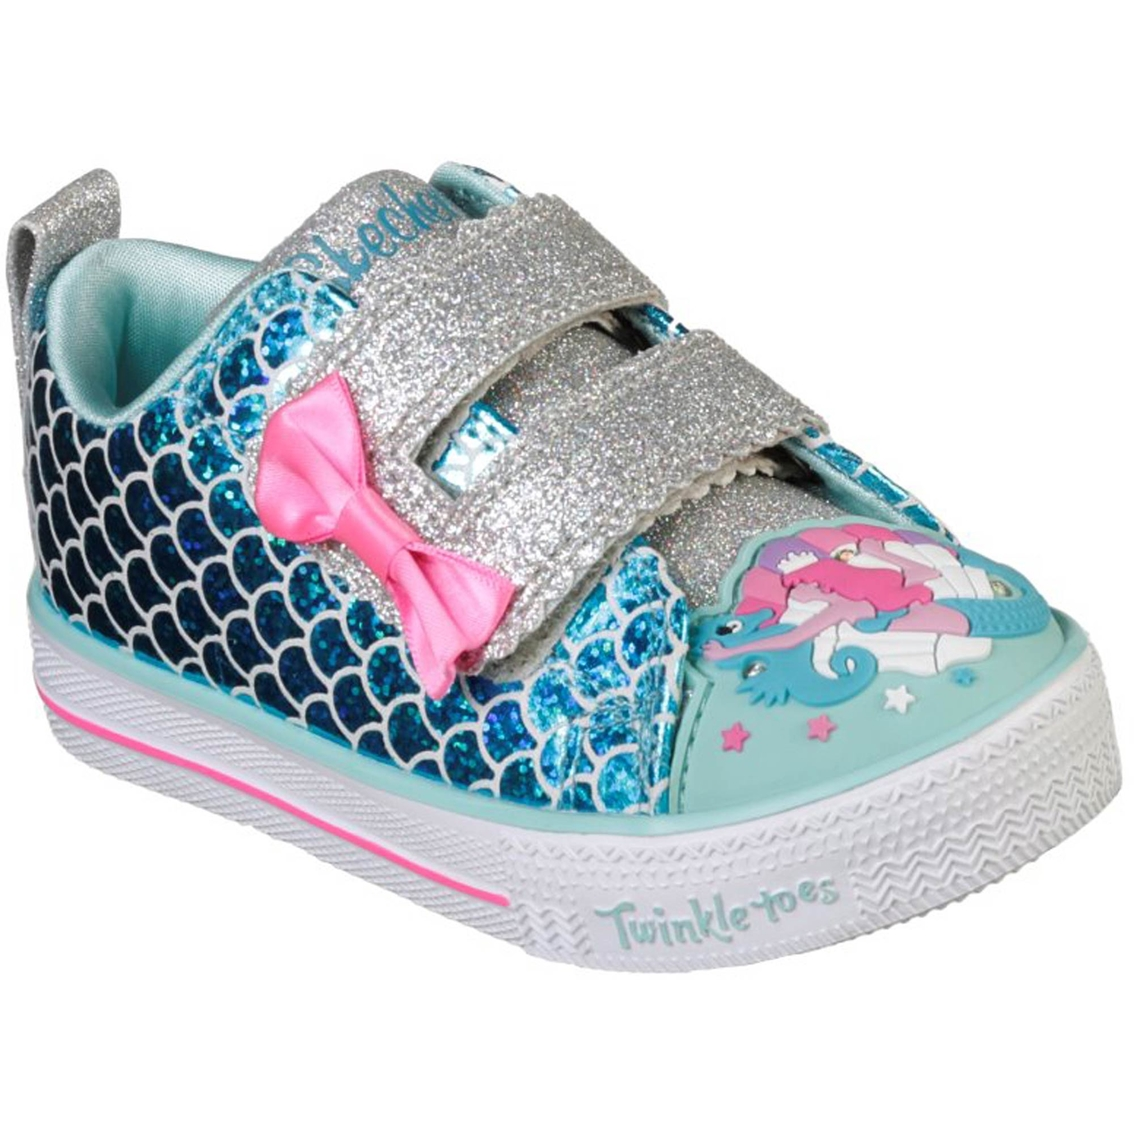 adb32565f7078 Skechers Toddler Girls Shuffle Lite Mermaid Parade Sneakers | Casual ...